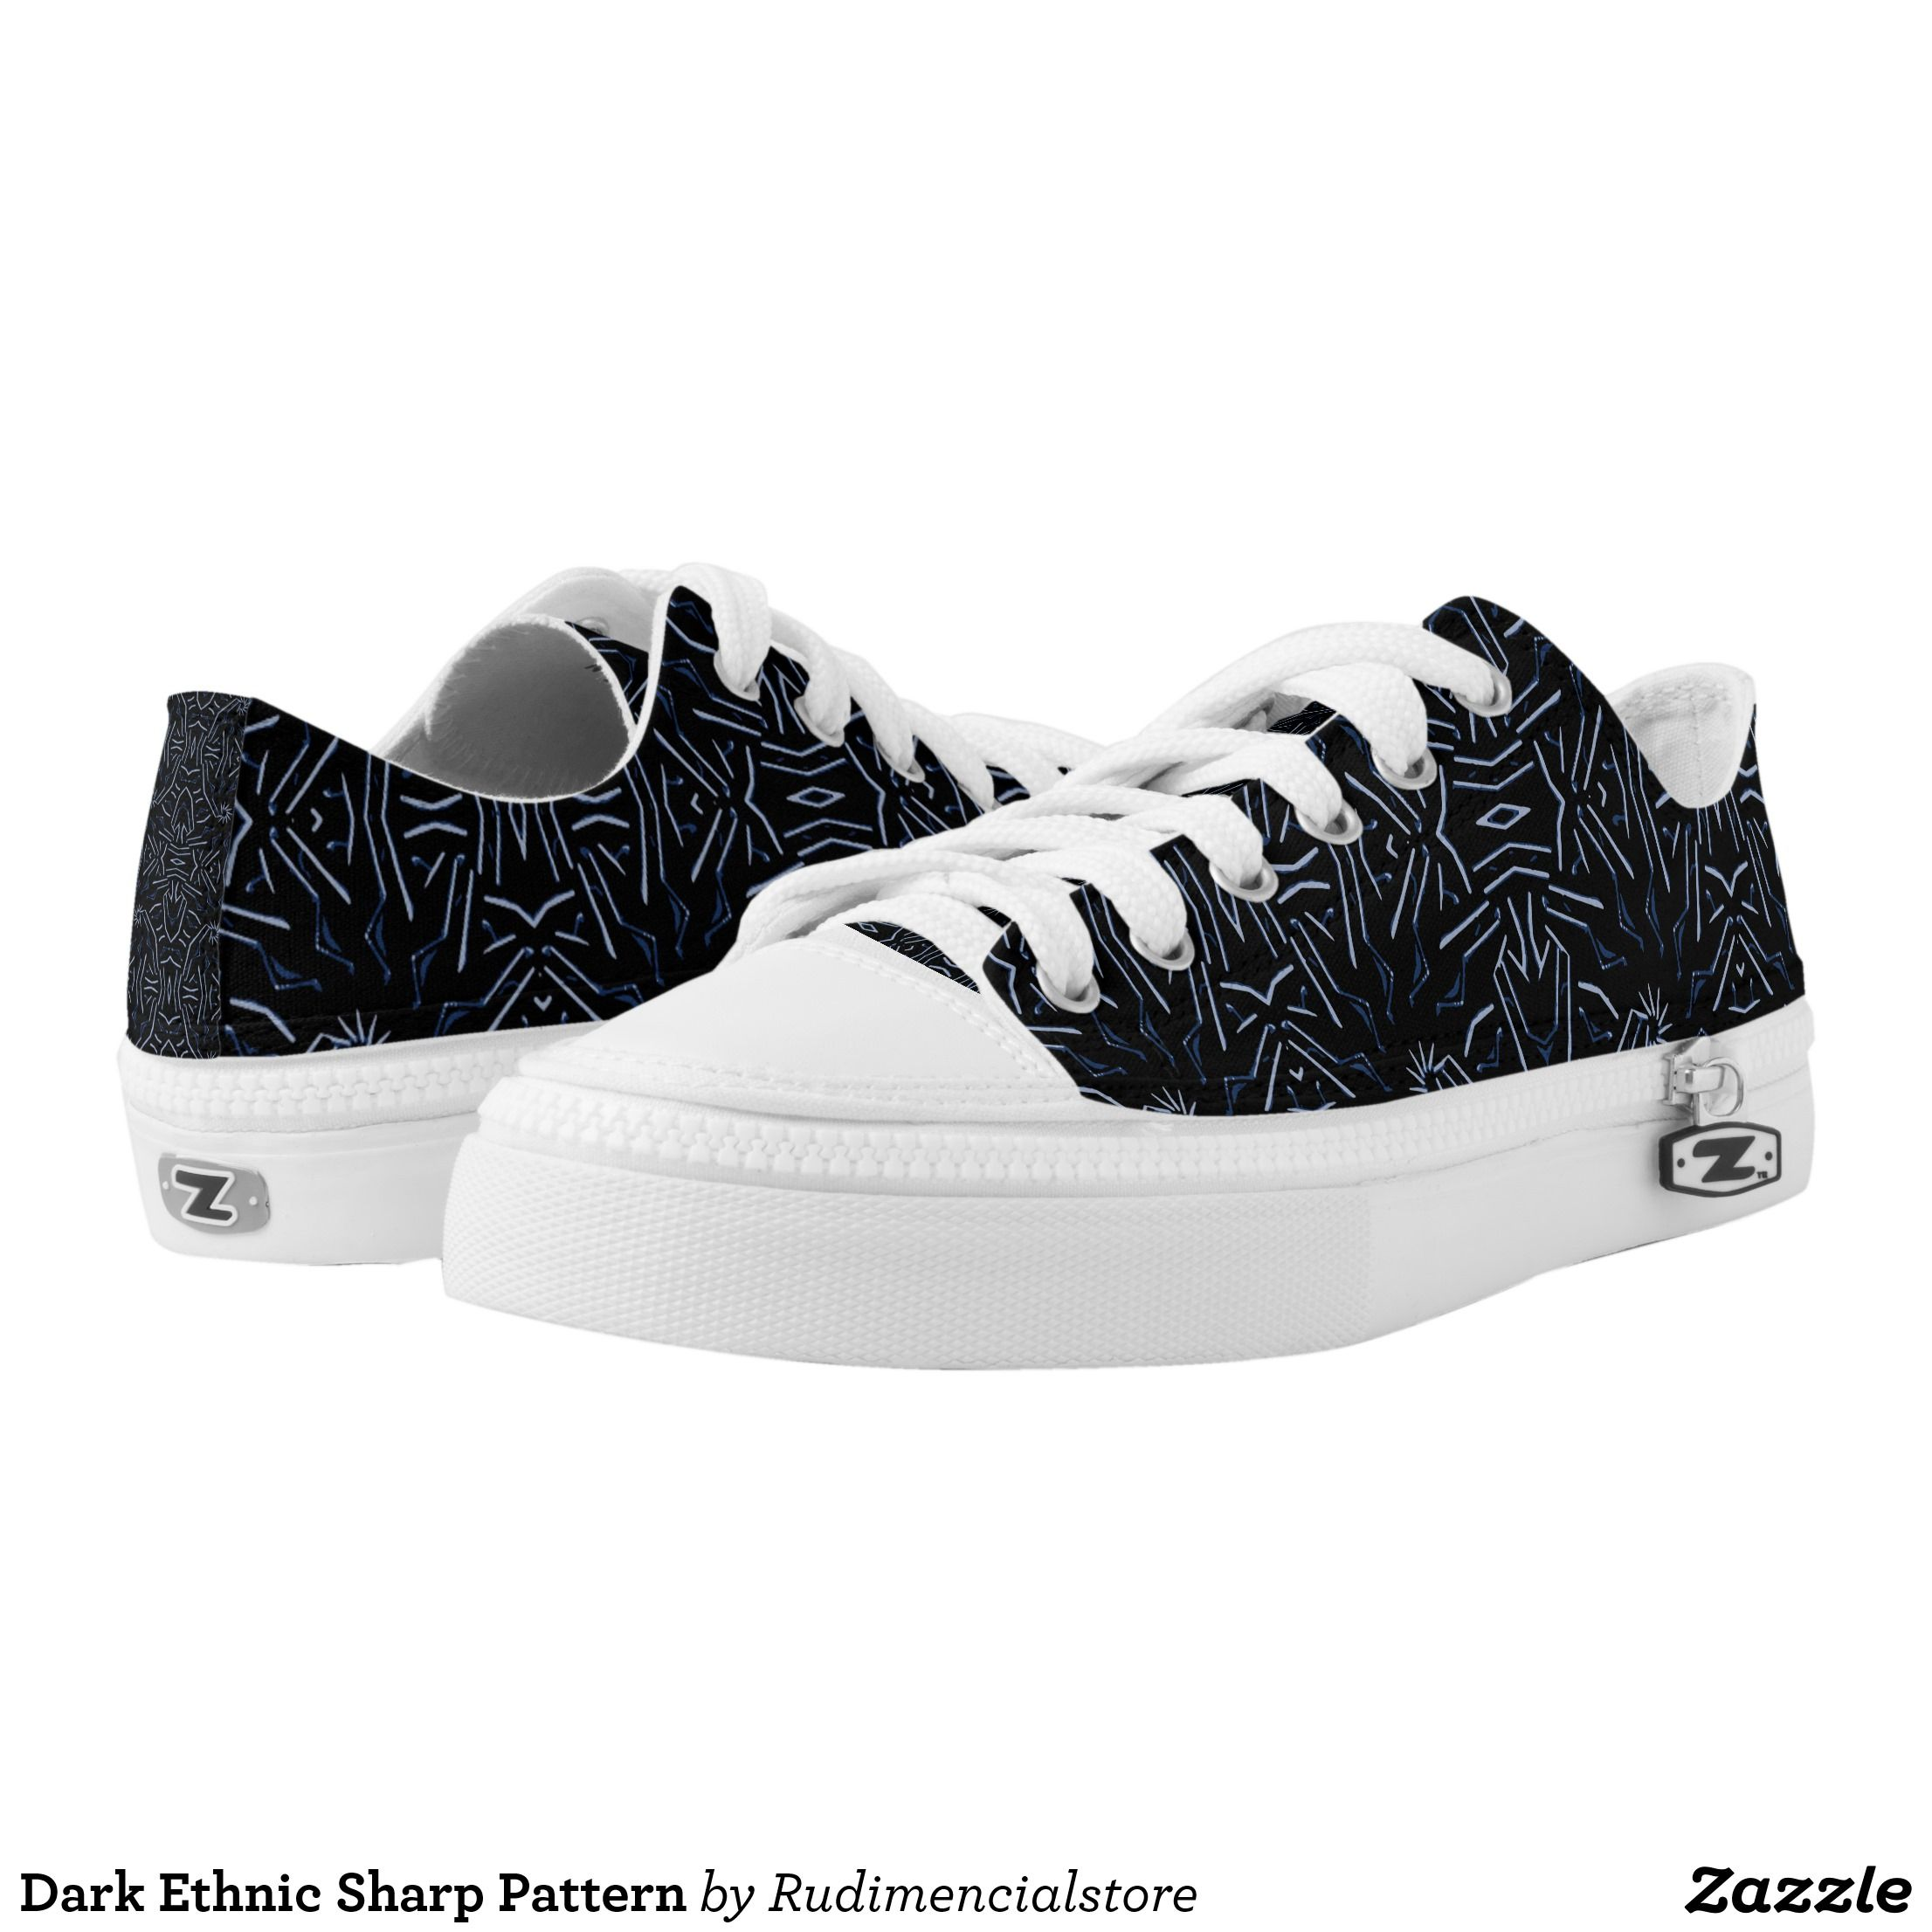 44380a80f19d Dark Ethnic Sharp Pattern Low-Top Sneakers - Canvas-Top Rubber-Sole  Athletic Shoes By Talented Fashion And Graphic Designers -  shoes  sneakers   footwear ...